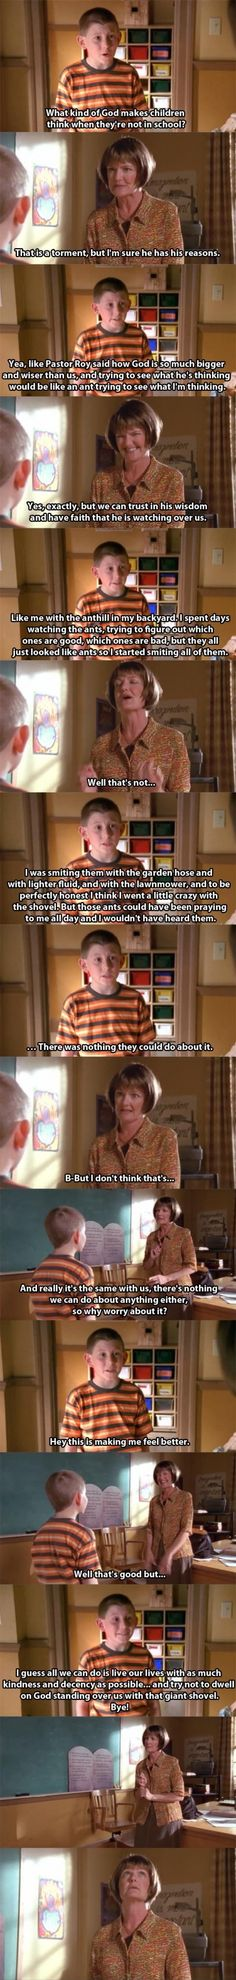 Dewey, god, smiting, ants, malcolm in the middle